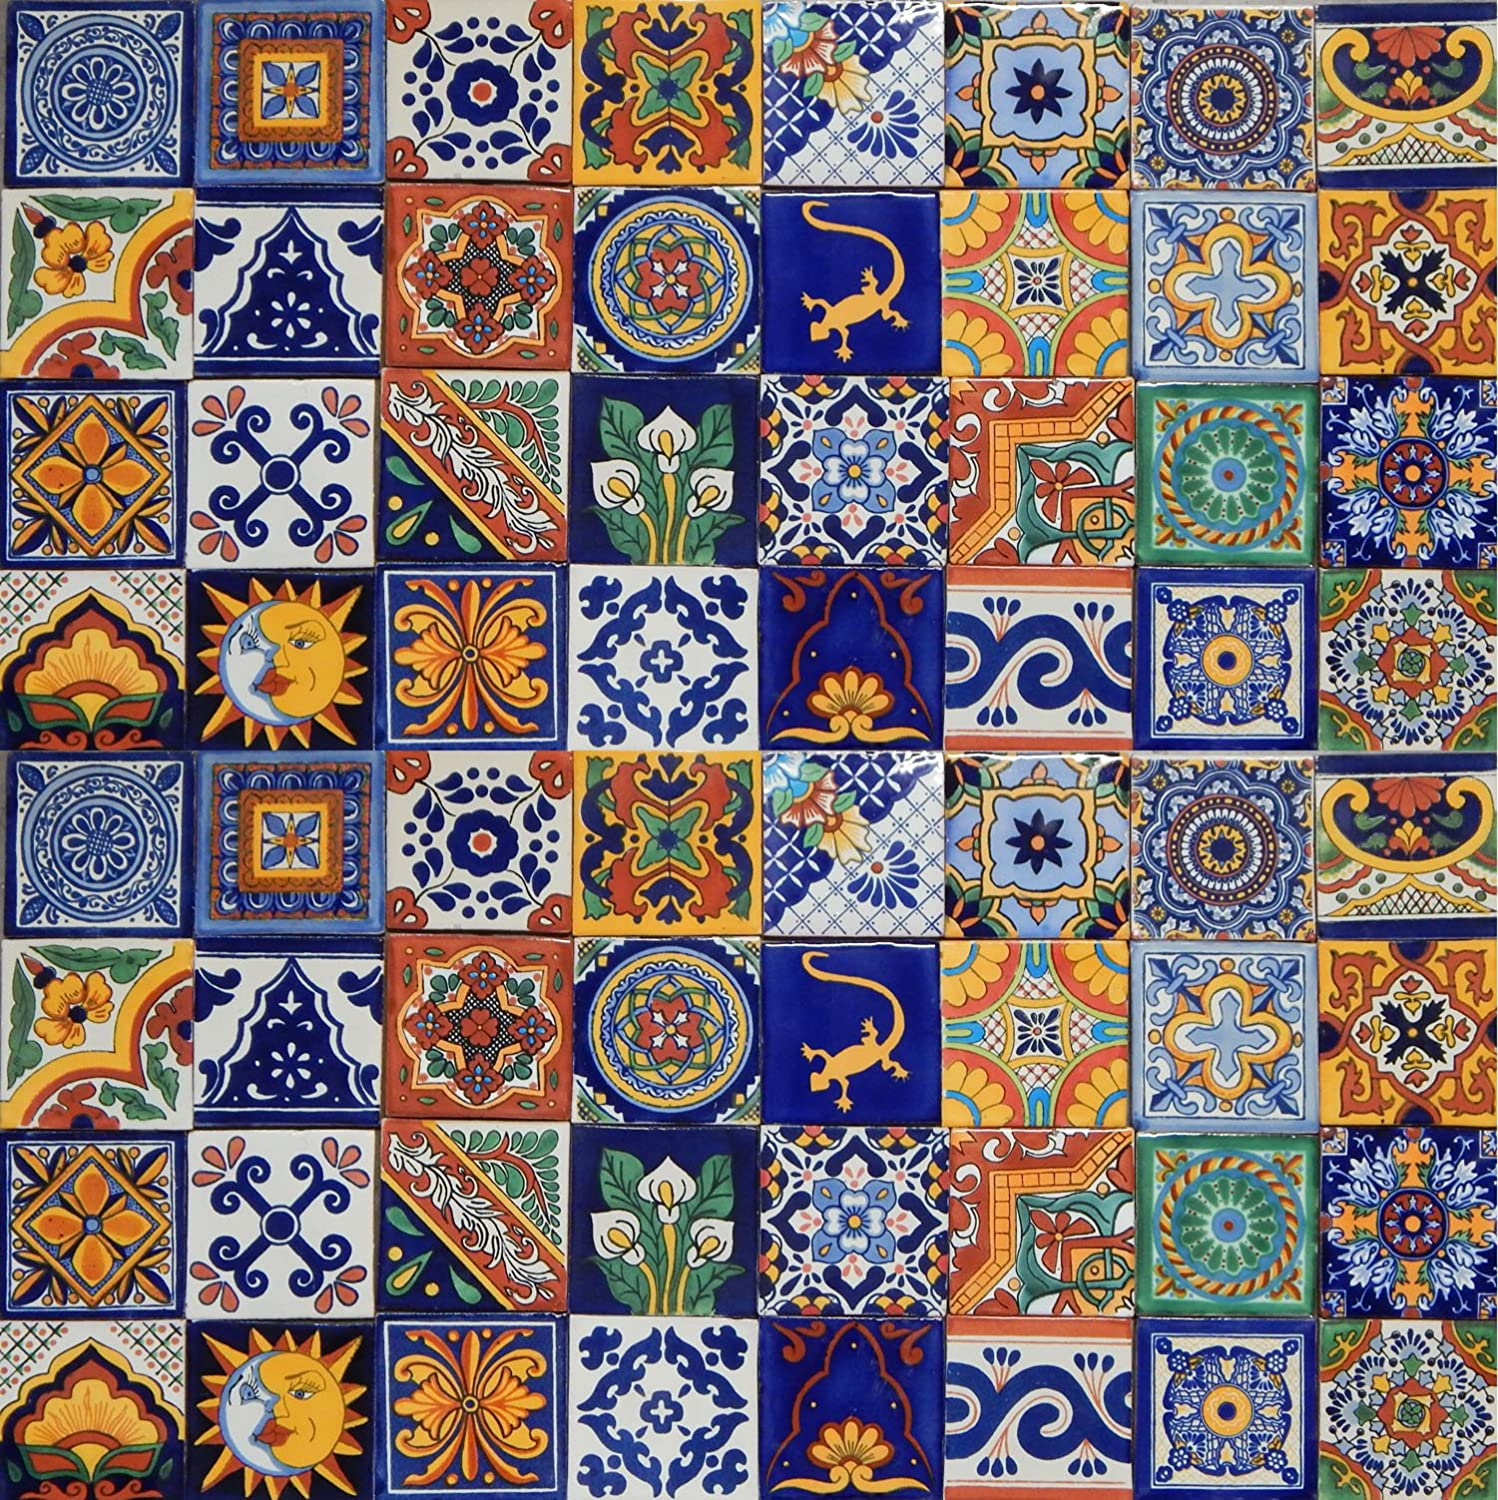 Shop amazon decorative tiles 100 mexican ceramic tiles handmade talavera tiles dailygadgetfo Gallery